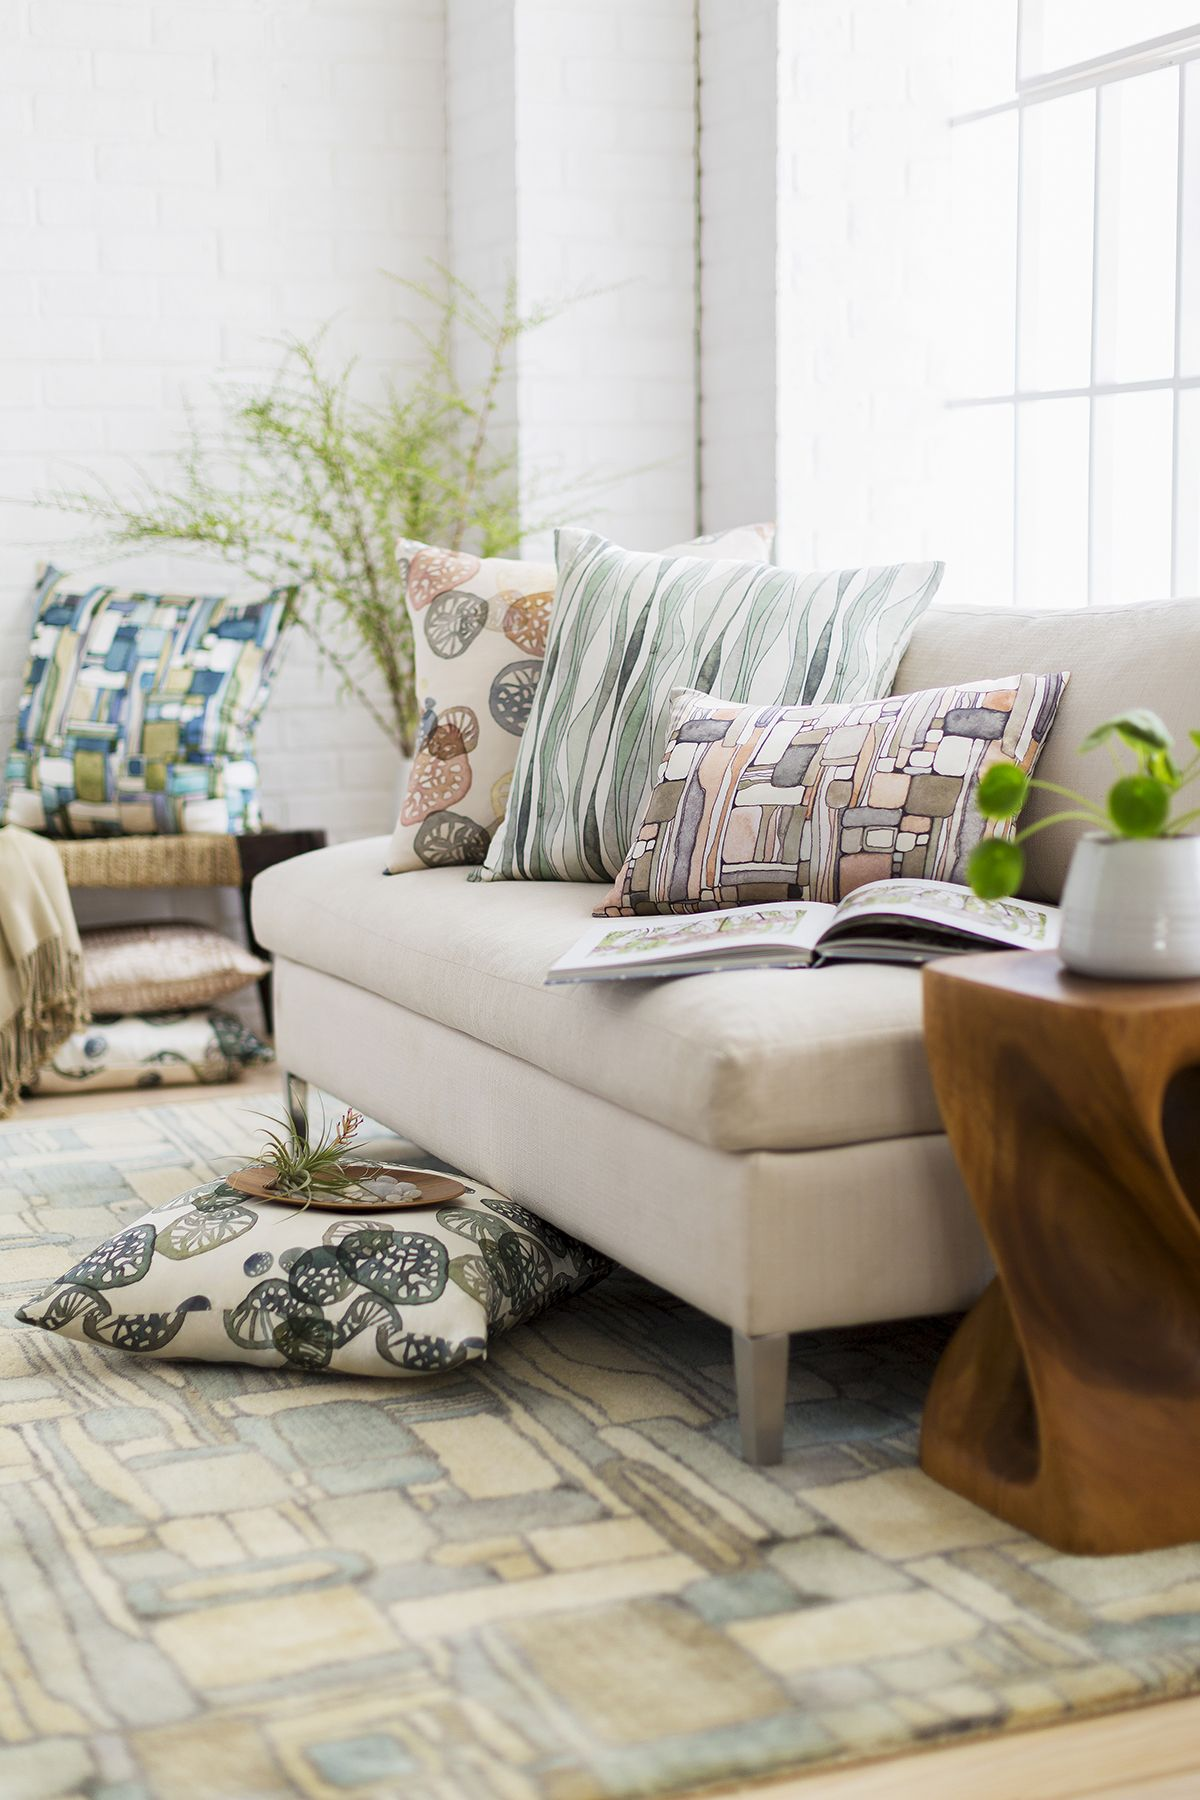 Surya's latest design partner, @shellrummel,, has been a successful artist and designer for over 20 years. Shell's rug and pillow designs feature a mix of softly serene, organic concepts as well as quietly elegant designs, directly inspired by elements found in nature.